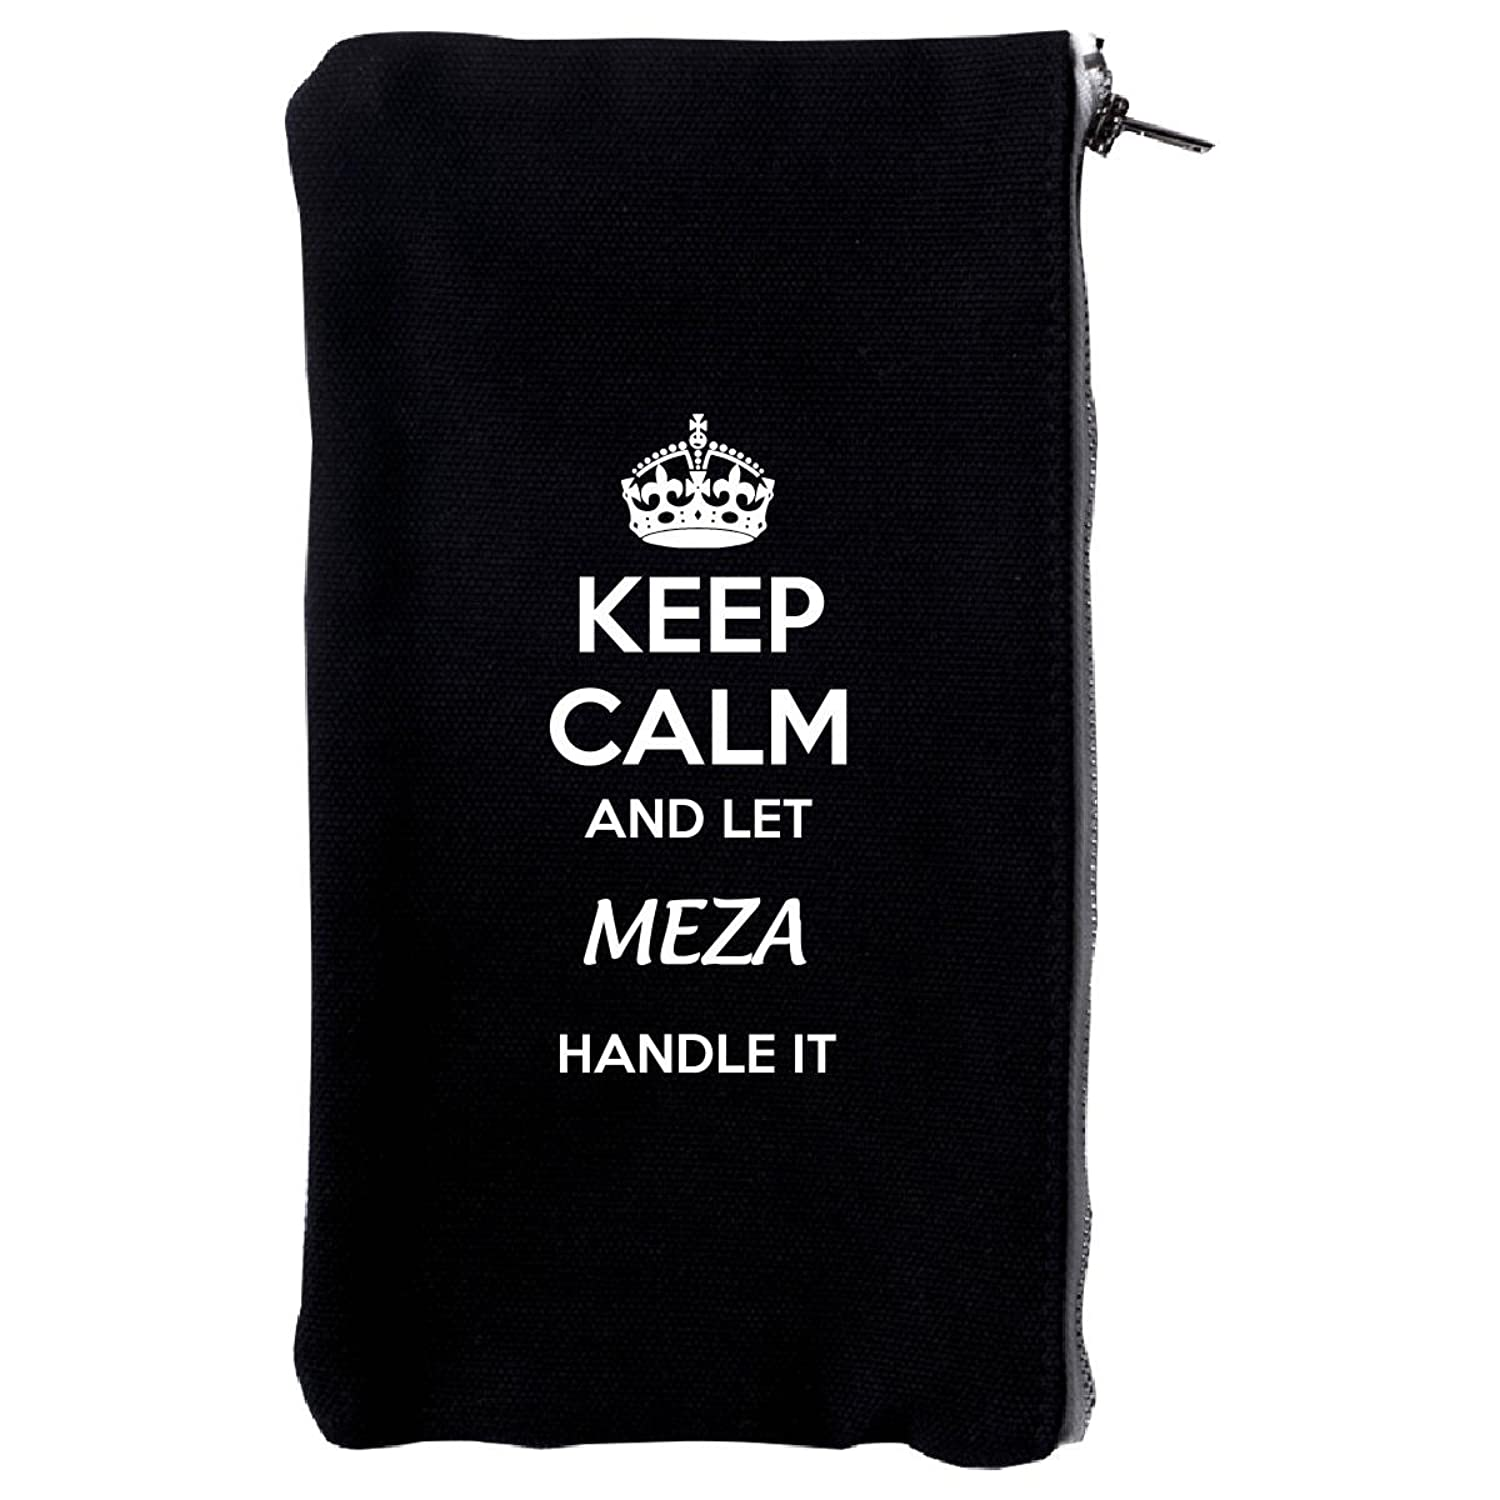 Keep Calm And Let Meza Handle It - Make Up Case